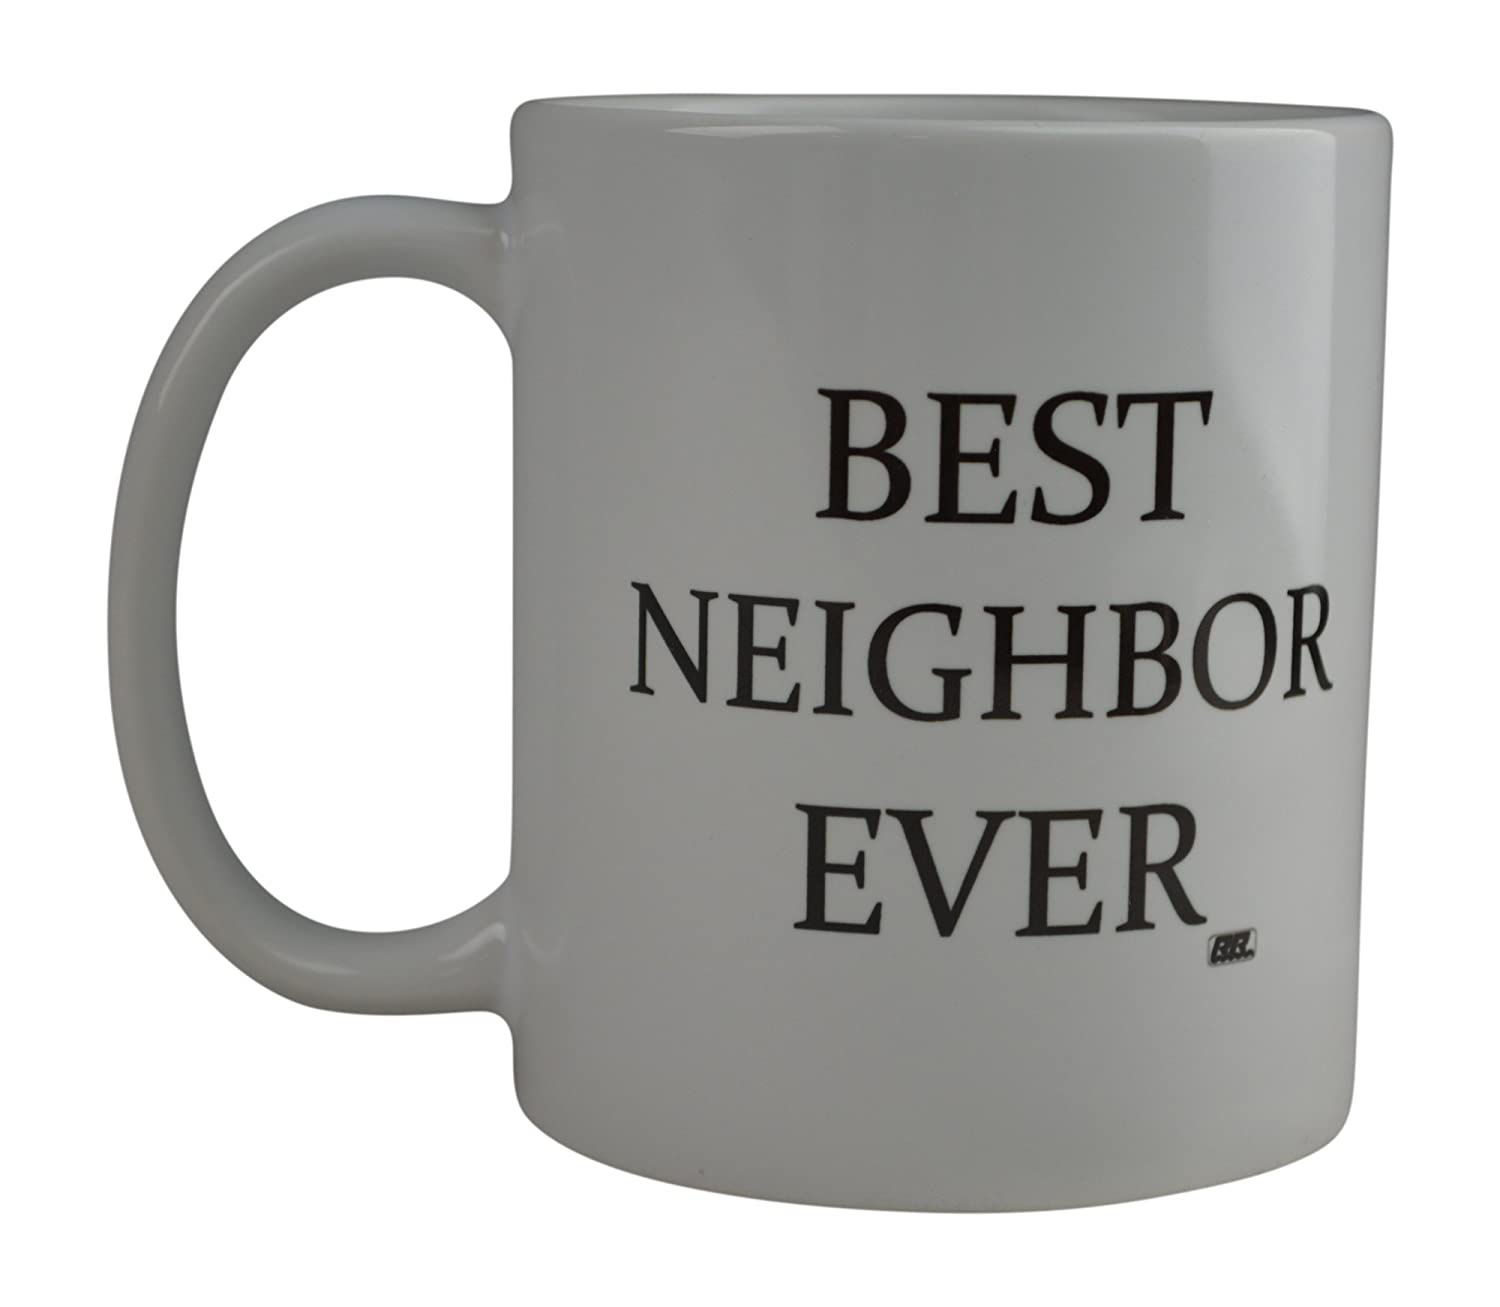 Neighbor Rogue River Funny Coffee Mug Best Neighbor Ever Novelty Cup Great Gift Idea For Your Neighbor at Home or Work